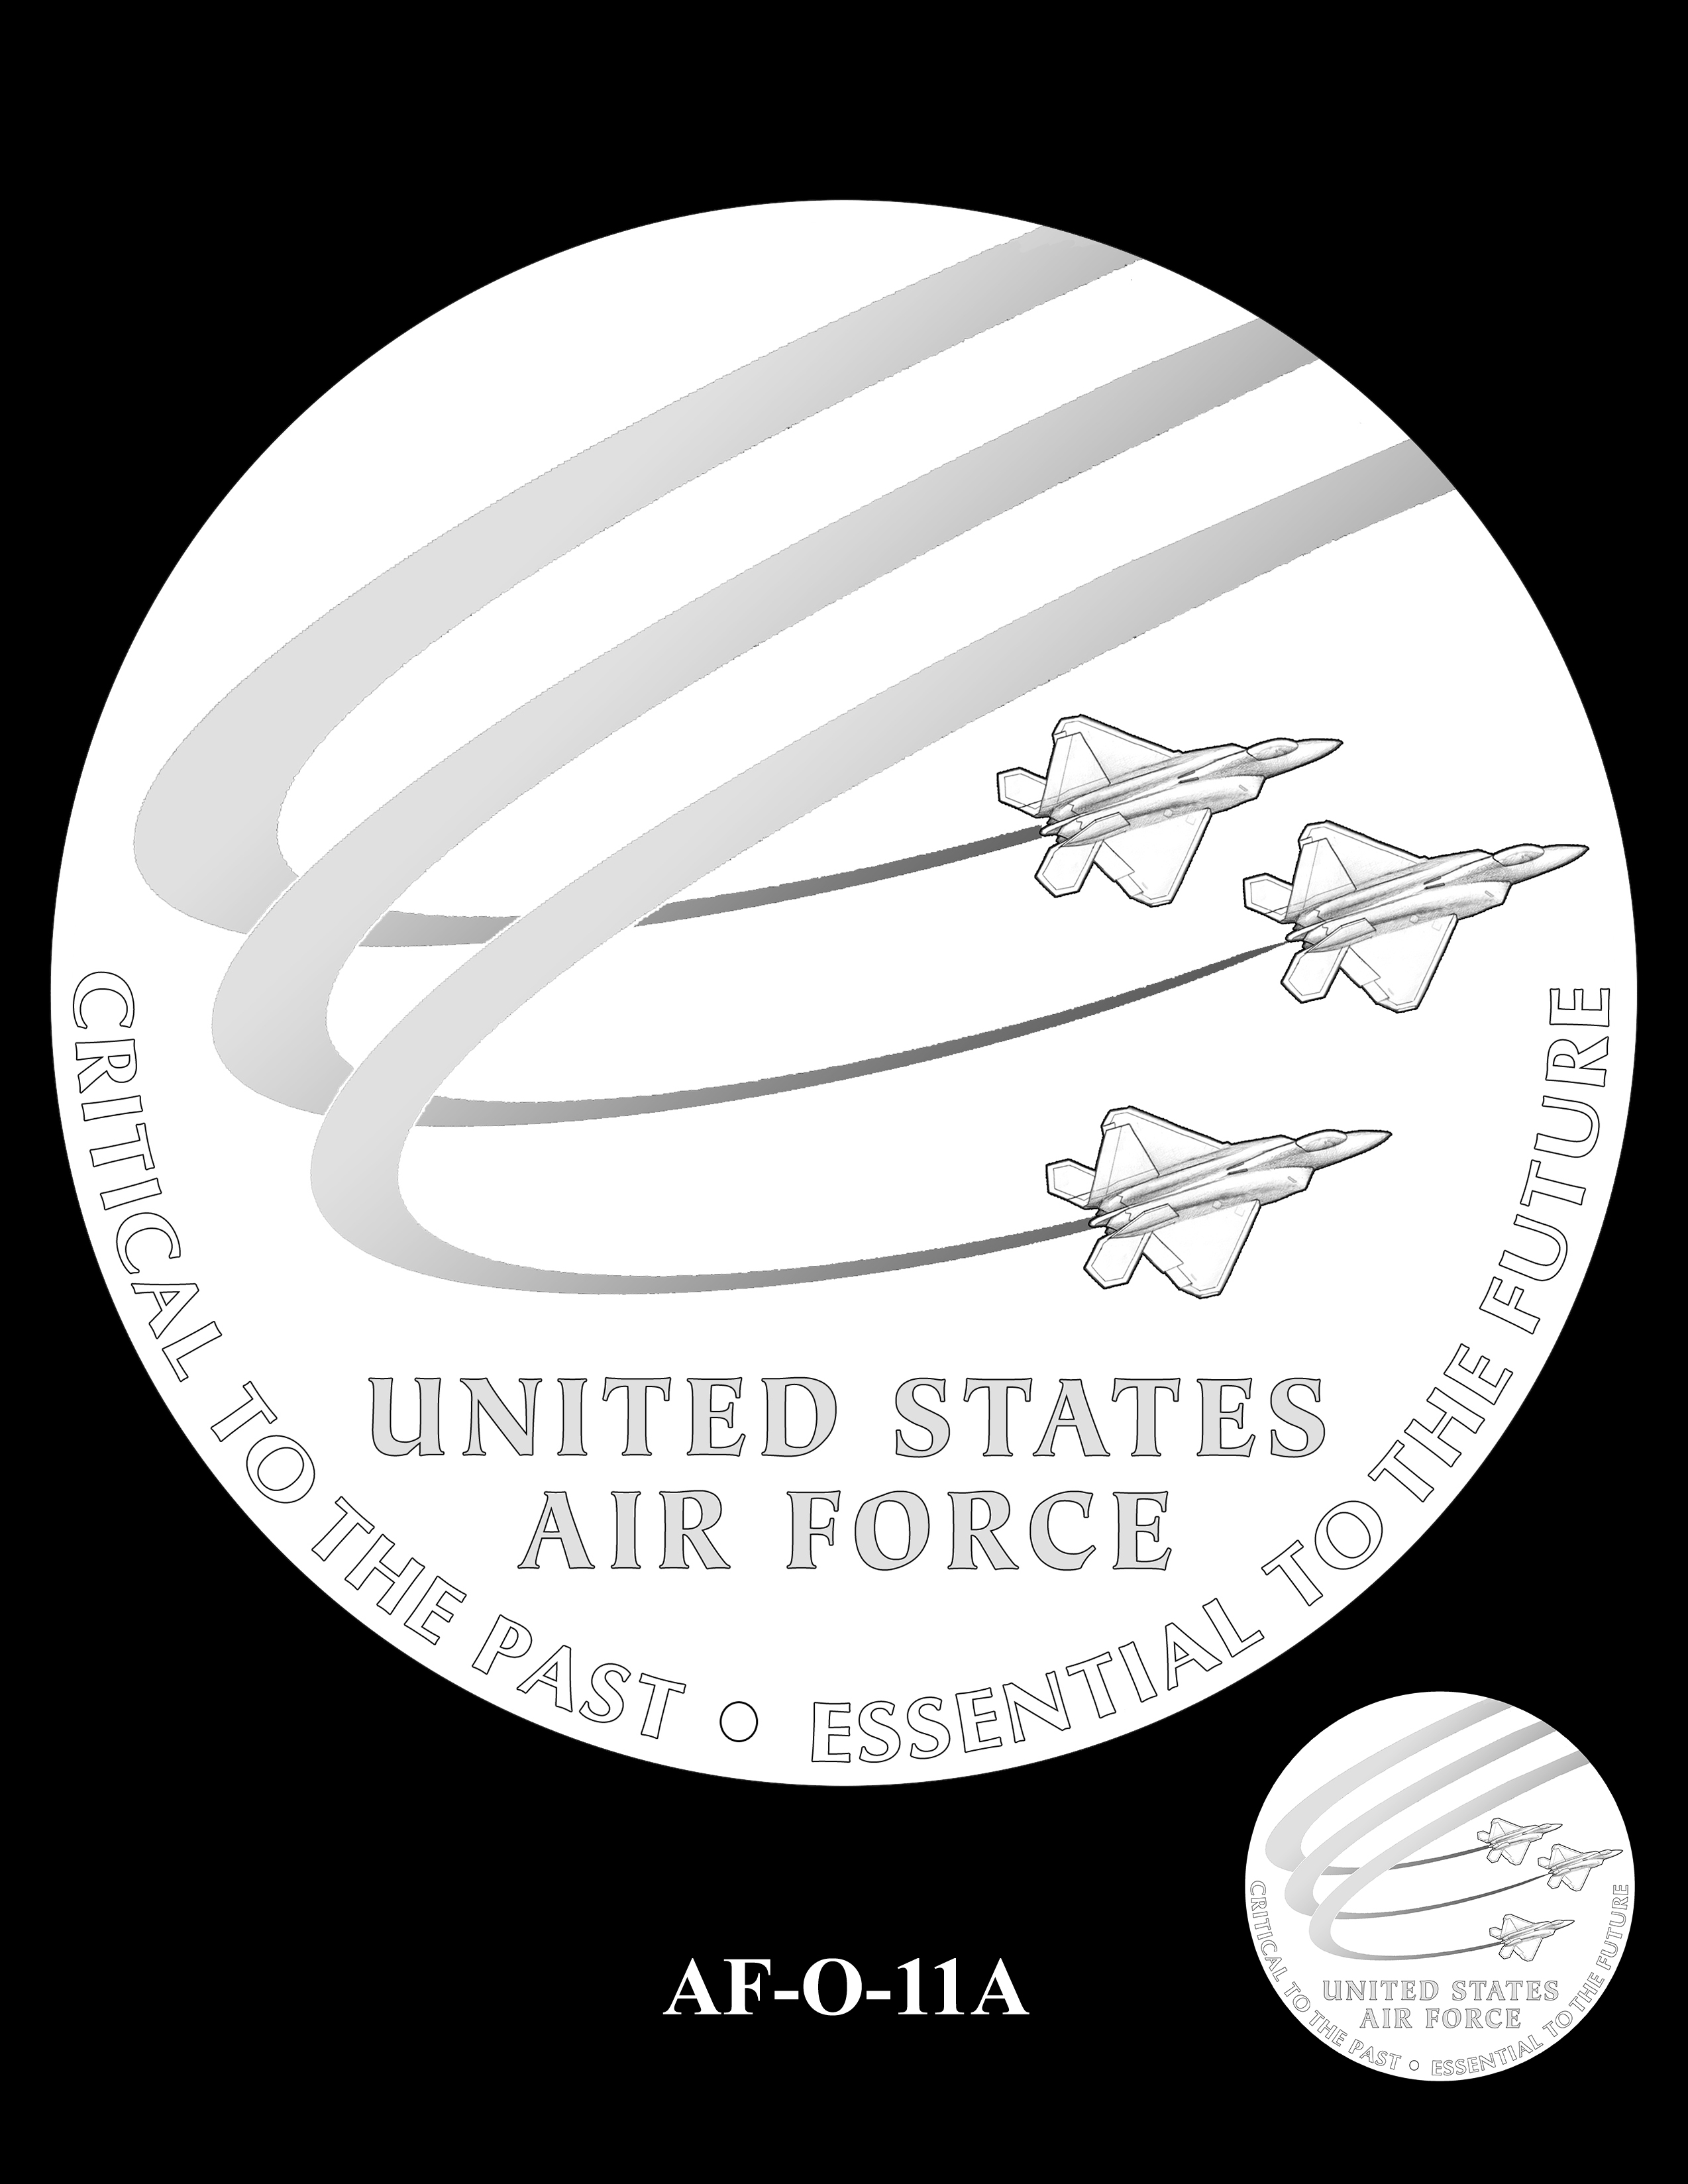 AF-O-11A -- Armed Forces Medal - Air Force